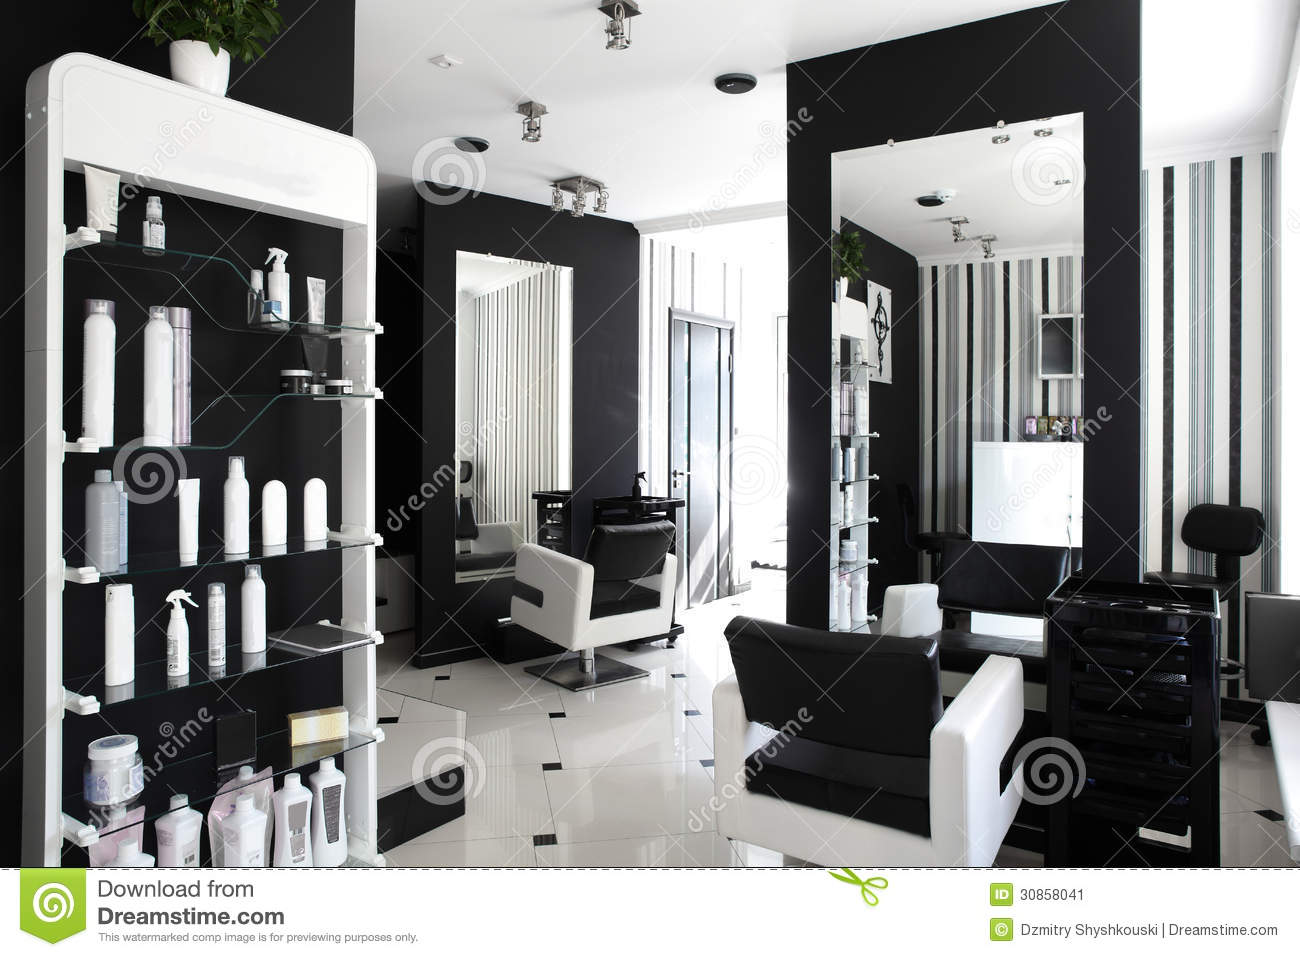 Y Style Hair Salon: Interior Of Modern Beauty Salon Stock Image